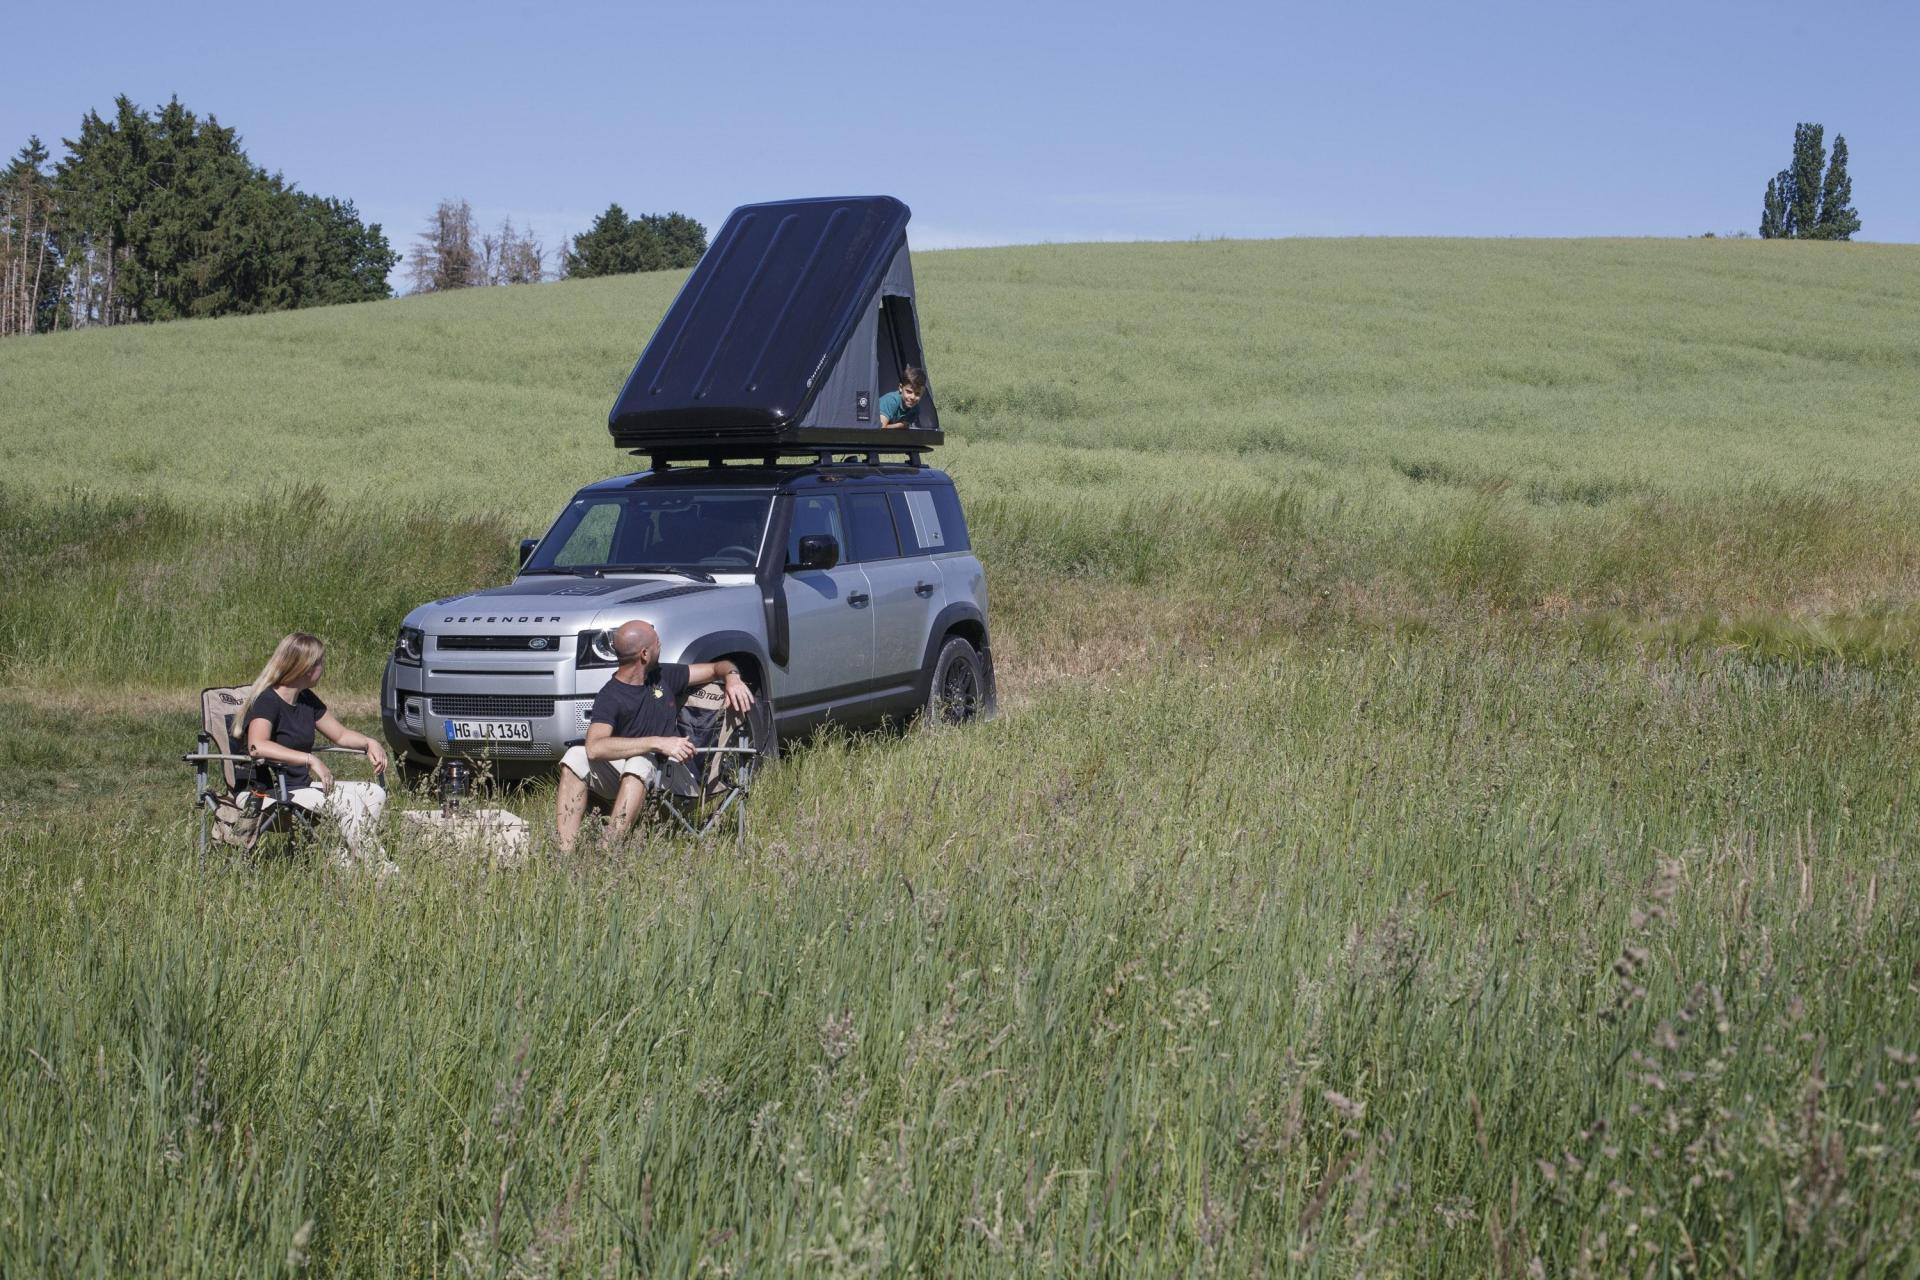 The tent is bespoke to the Defender.